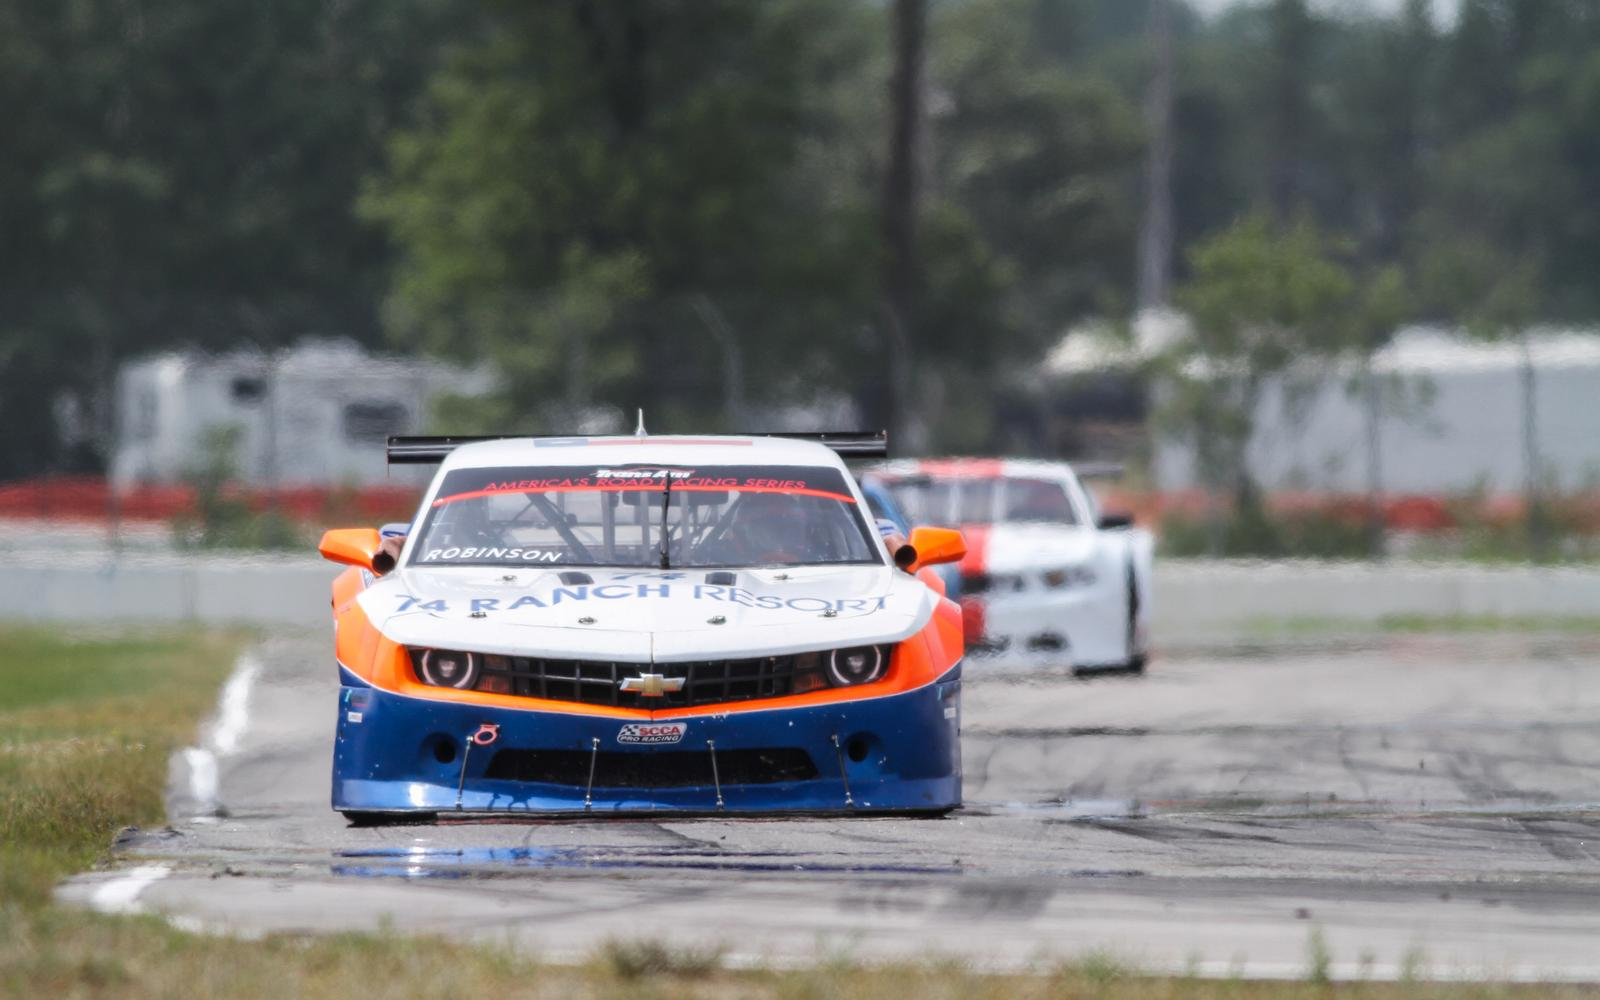 GAR ROBINSON FINISHES THIRD AT BRAINERD, EARNING HIS FOURTH PODIUM OF THE 2015 TRANS AM SEASON